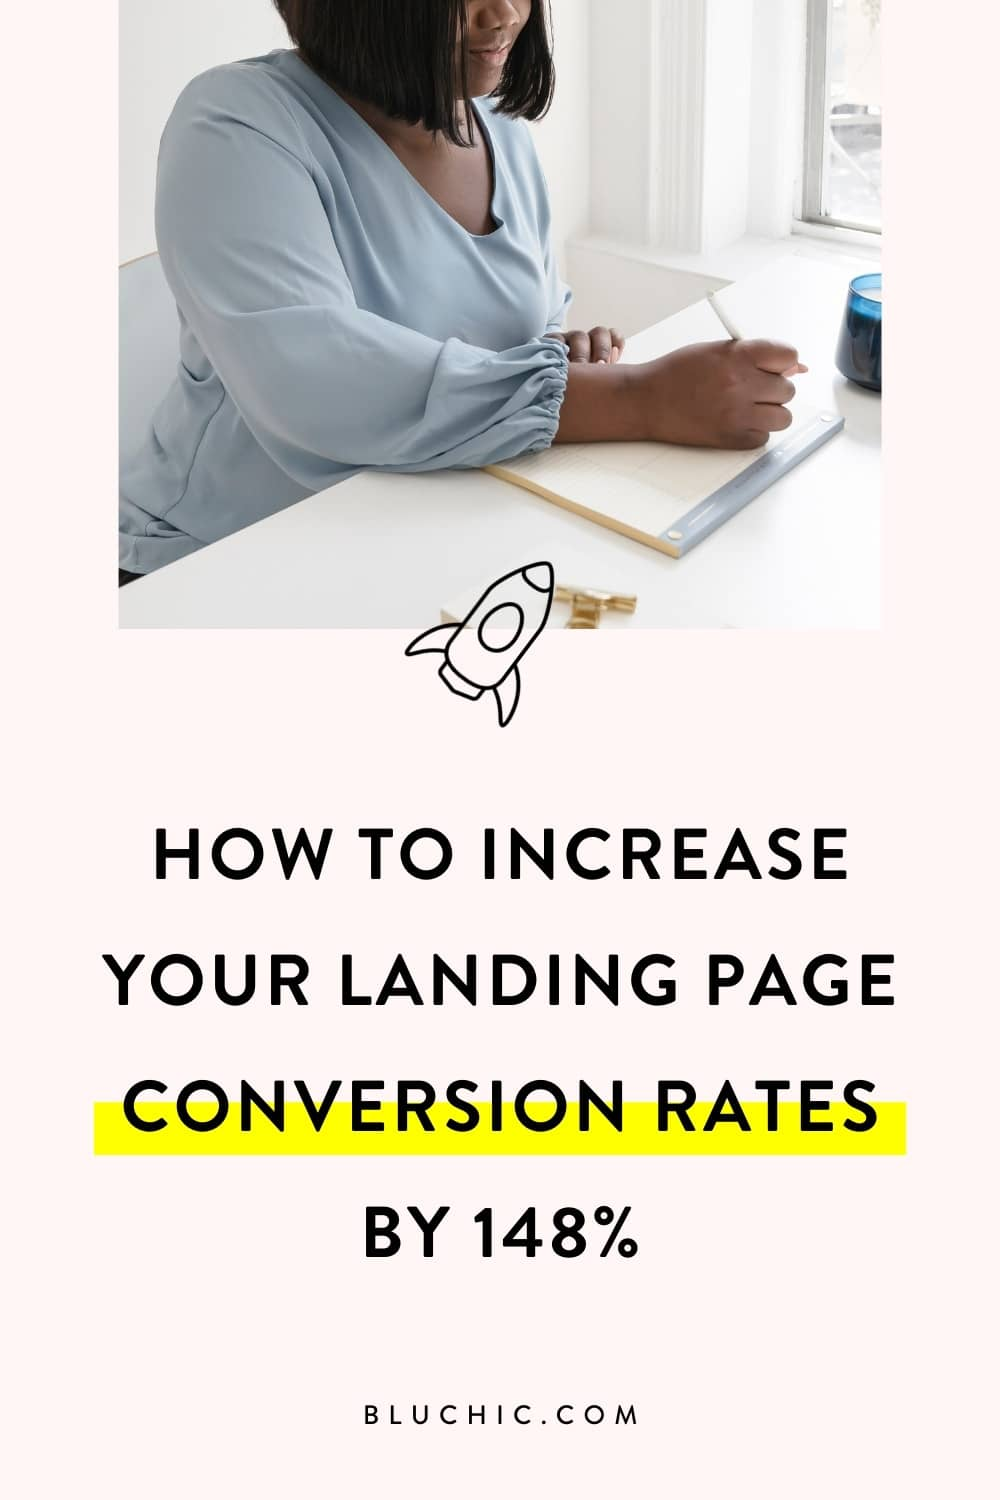 Learn how you can increase your landing page conversion rates by 148%!